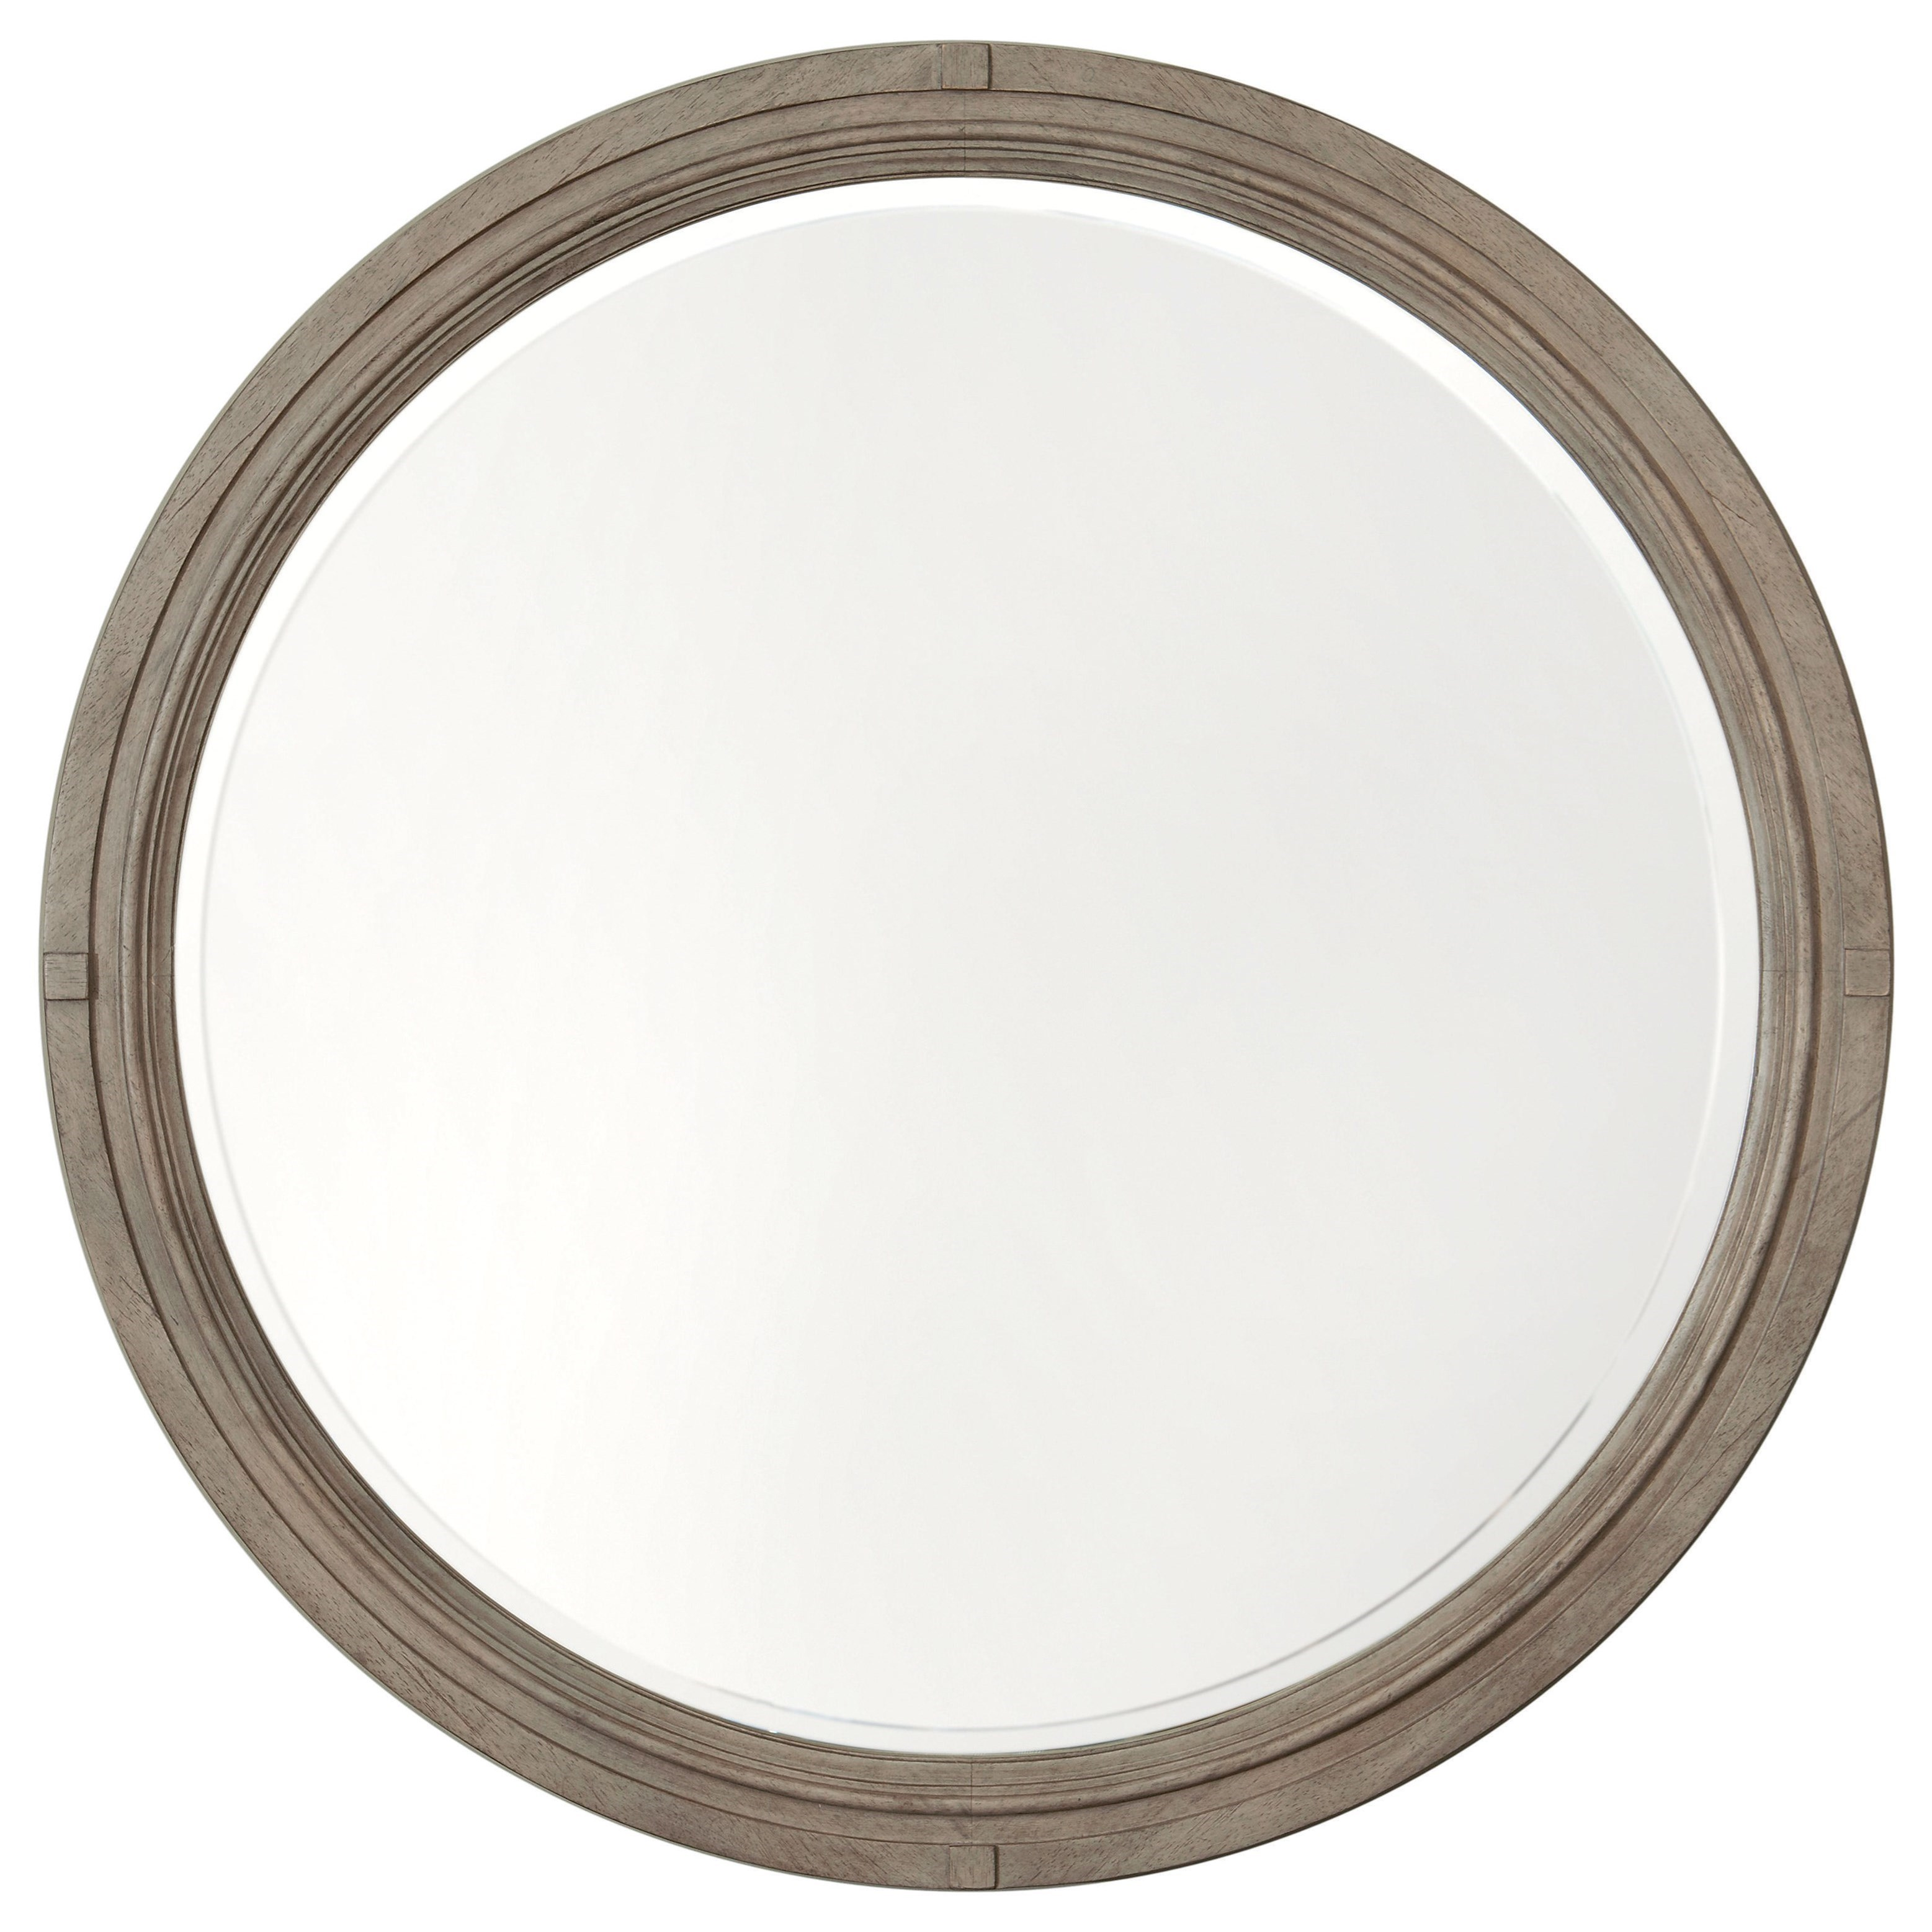 Bella Round Mirror by Bassett at Johnny Janosik